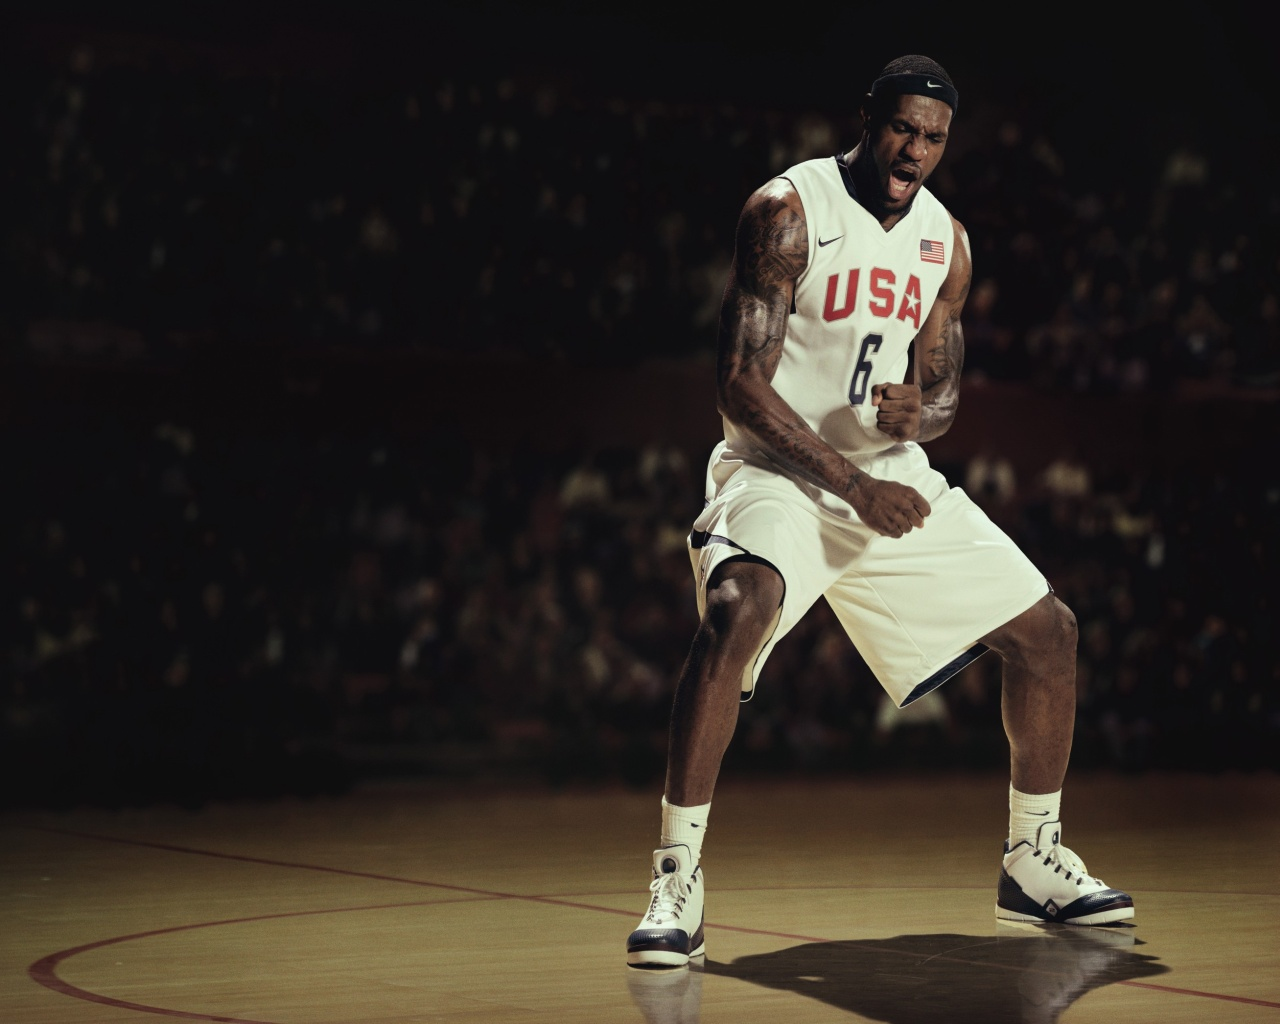 Lebron James Wallpapers   Lebron James new Hd Wallpapers Top sports 1280x1024